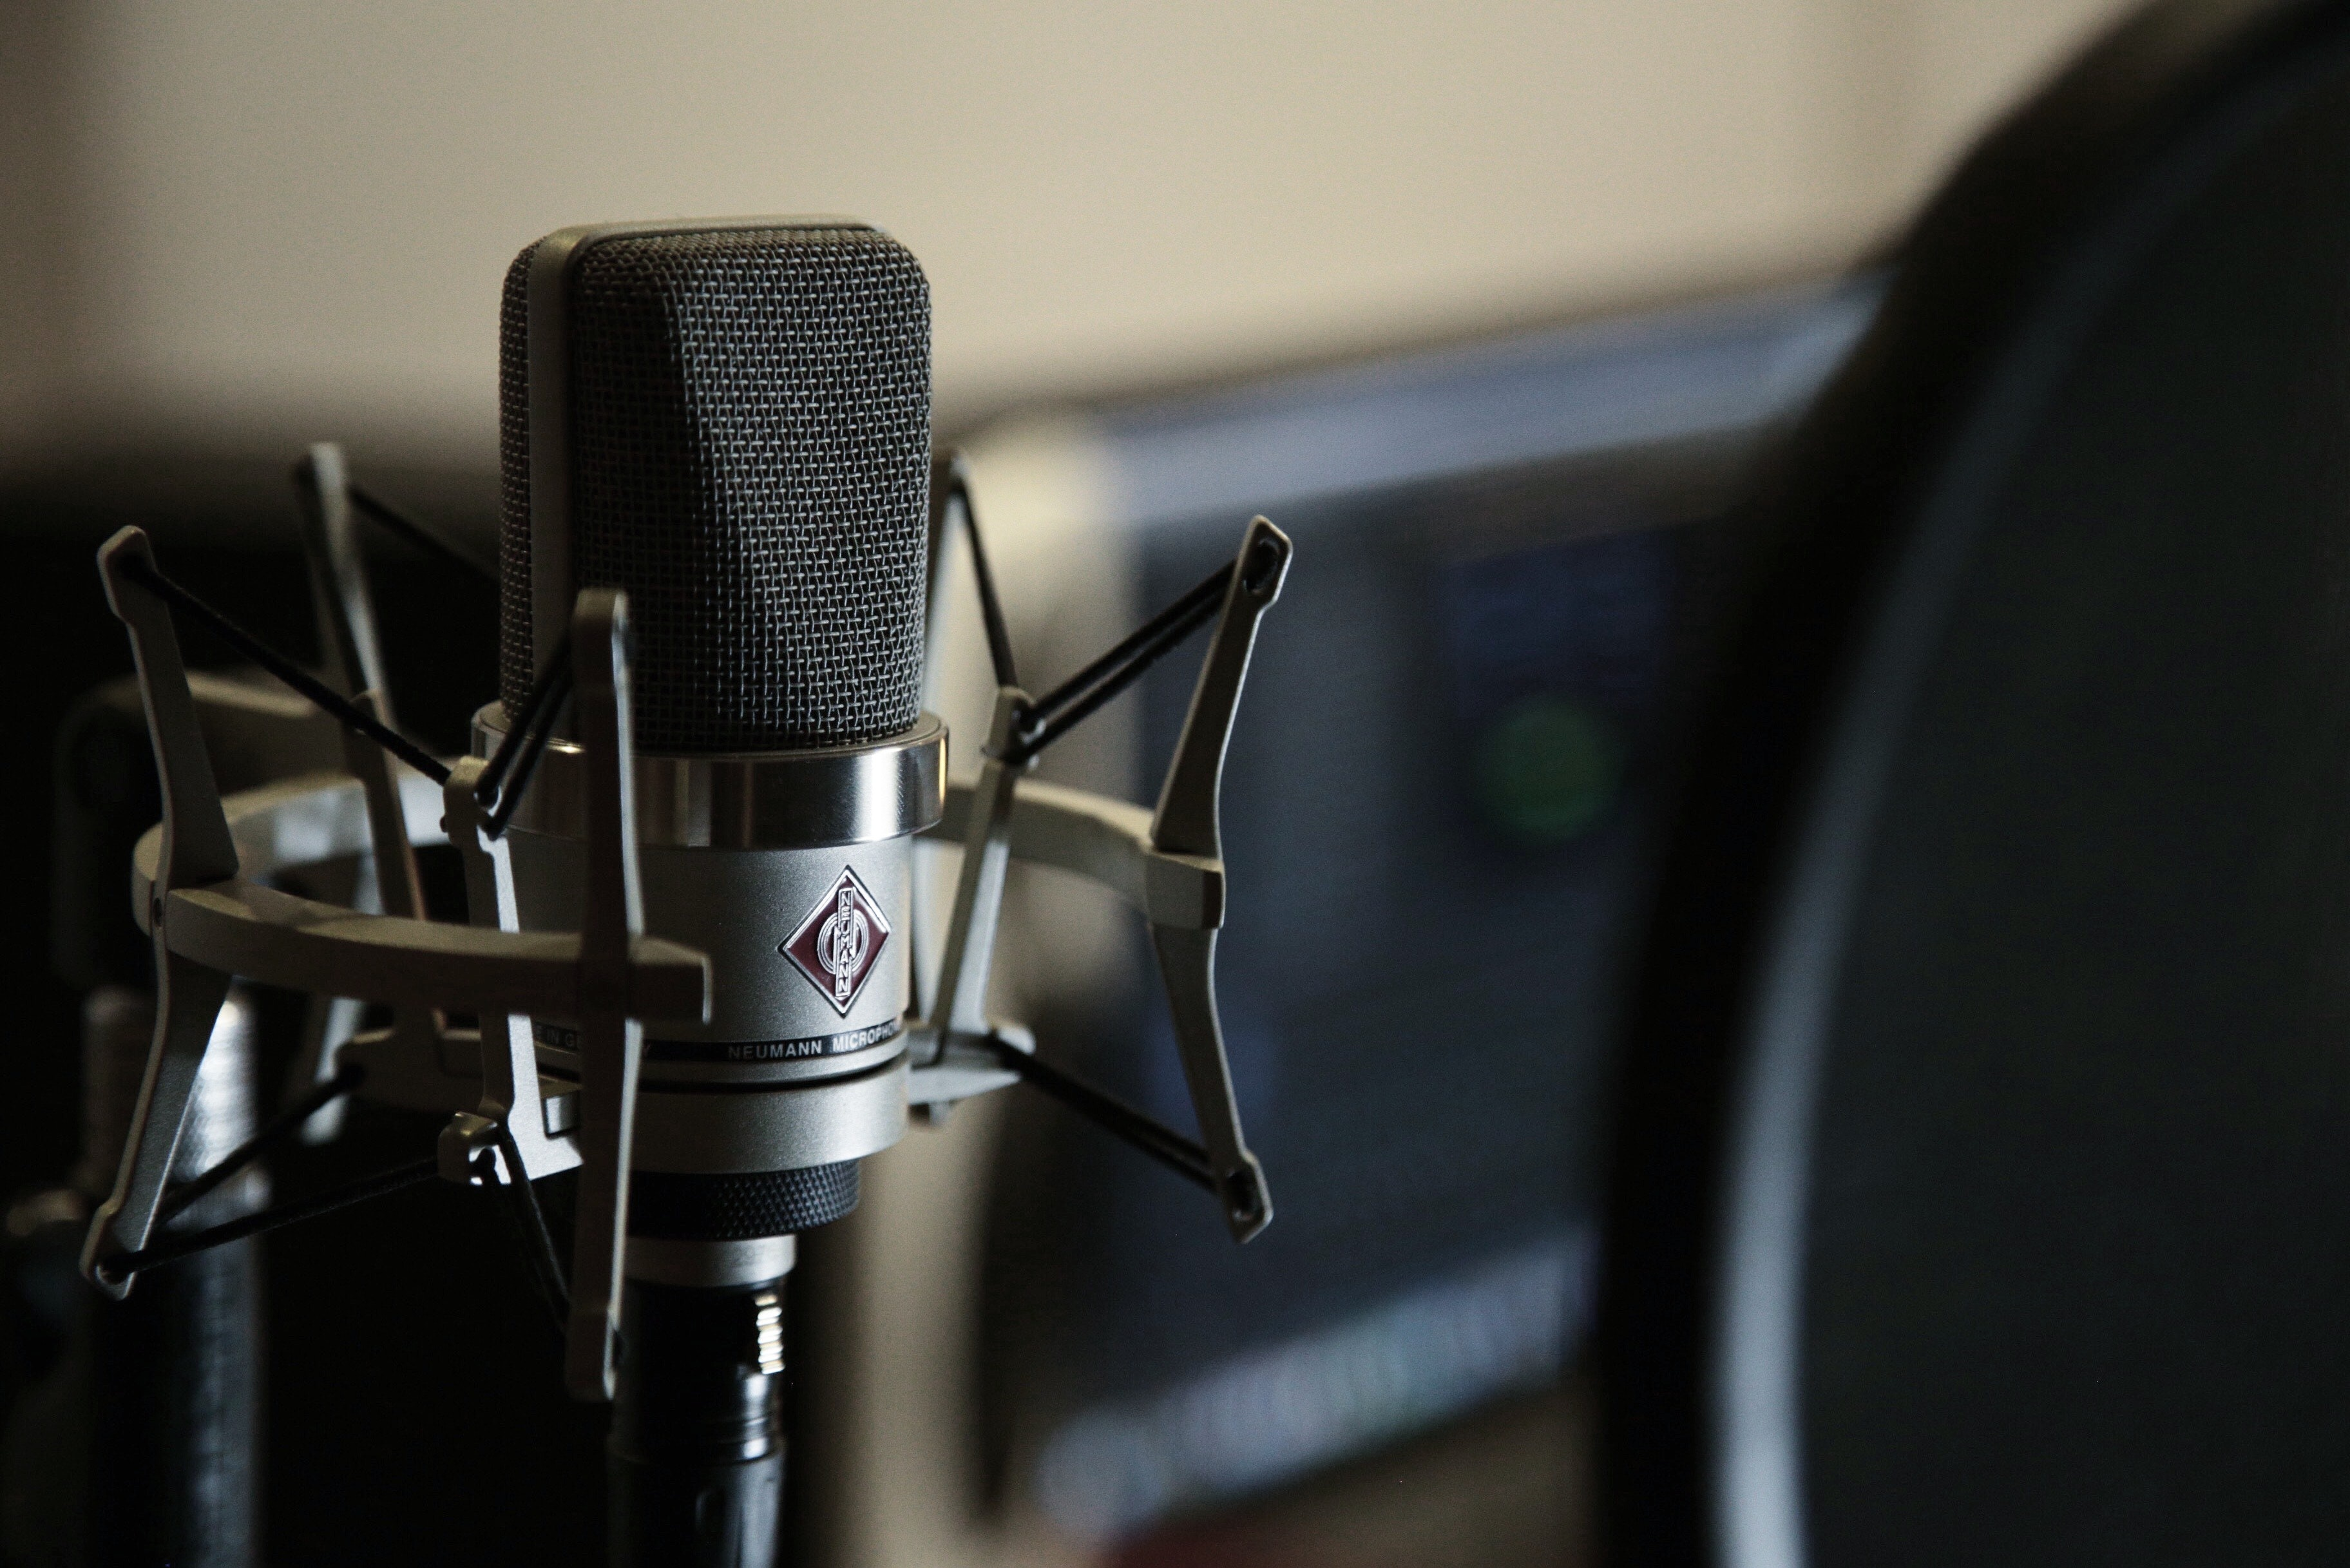 How Voice Actors Can Use Their Skills to Make a Difference During Quarantine